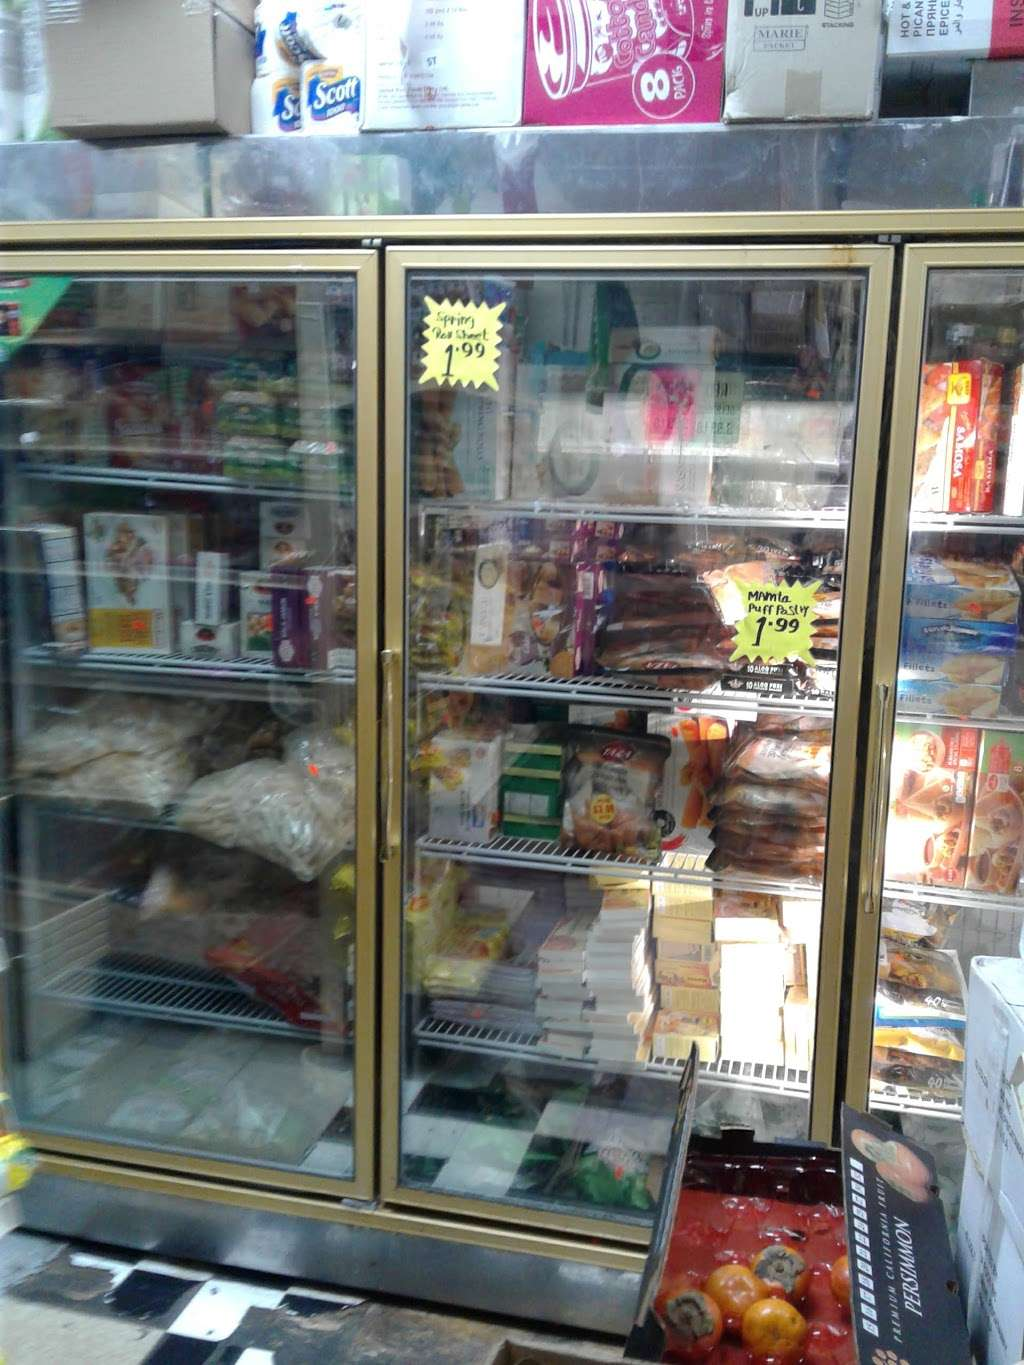 Pak Valley Halal Meats Inc - store    Photo 10 of 10   Address: 369 N Central Ave, Valley Stream, NY 11580, USA   Phone: (516) 568-0588